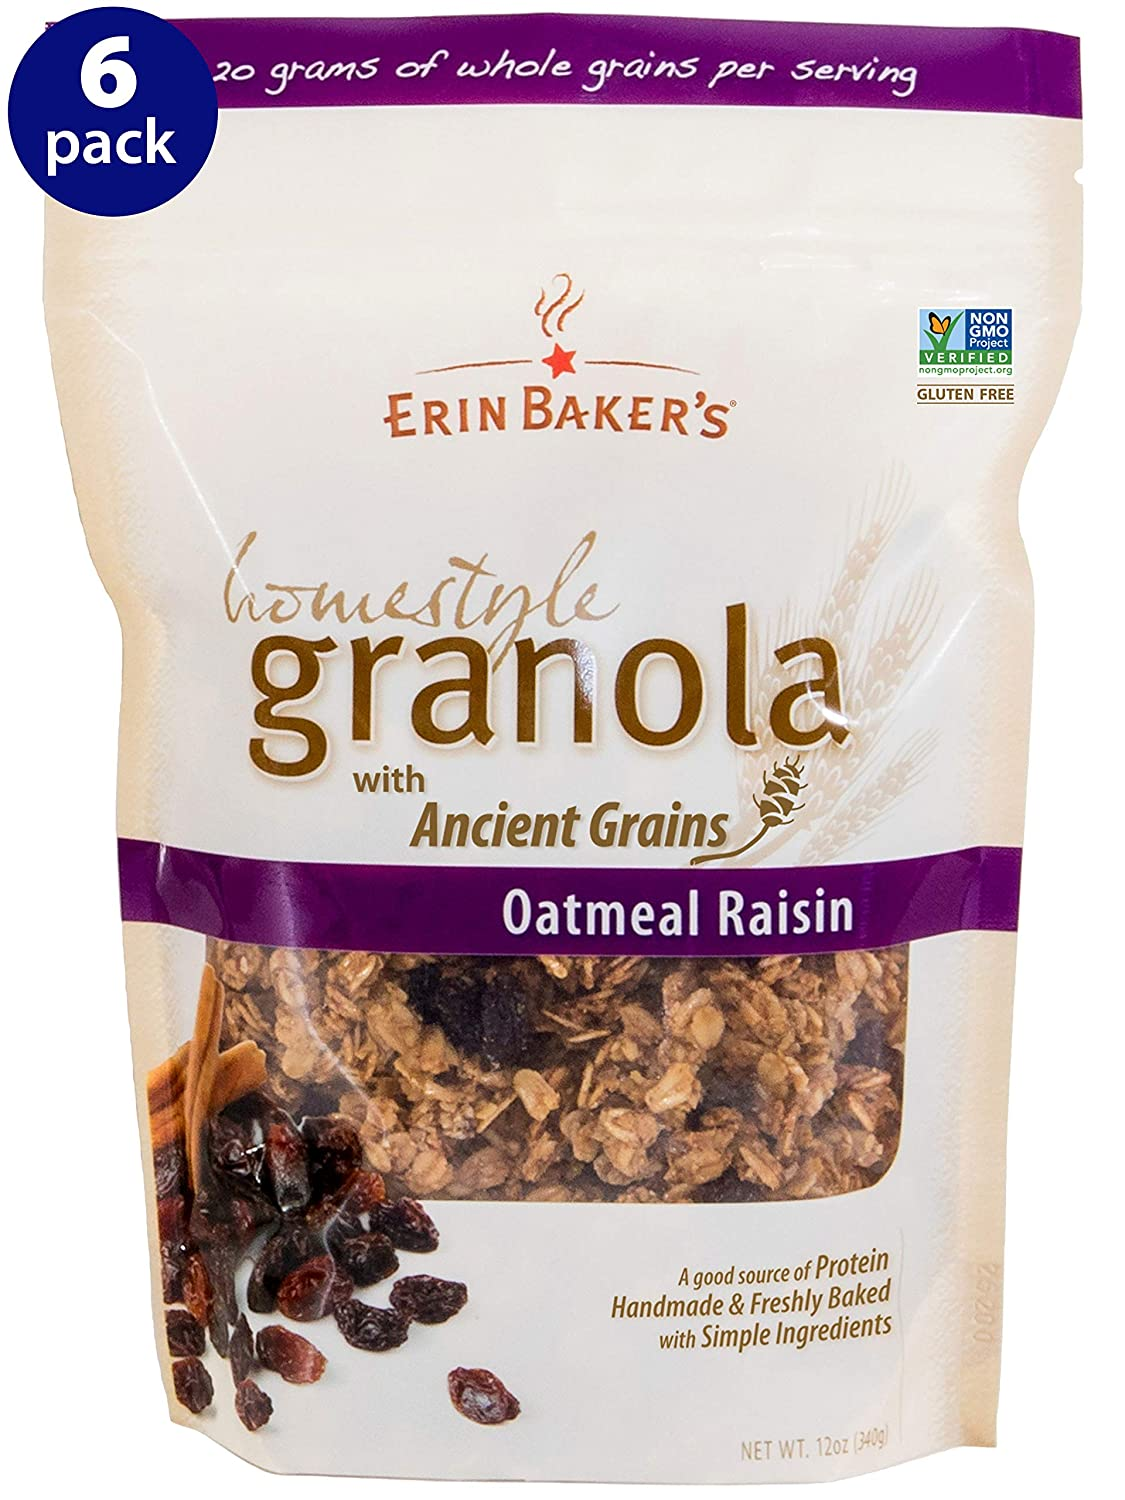 Erin Baker's Homestyle Granola, Oatmeal Raisin, Gluten-Free, Ancient Grains, Vegan, Non-GMO, Cereal, 12-ounce bags (Pack of 6)